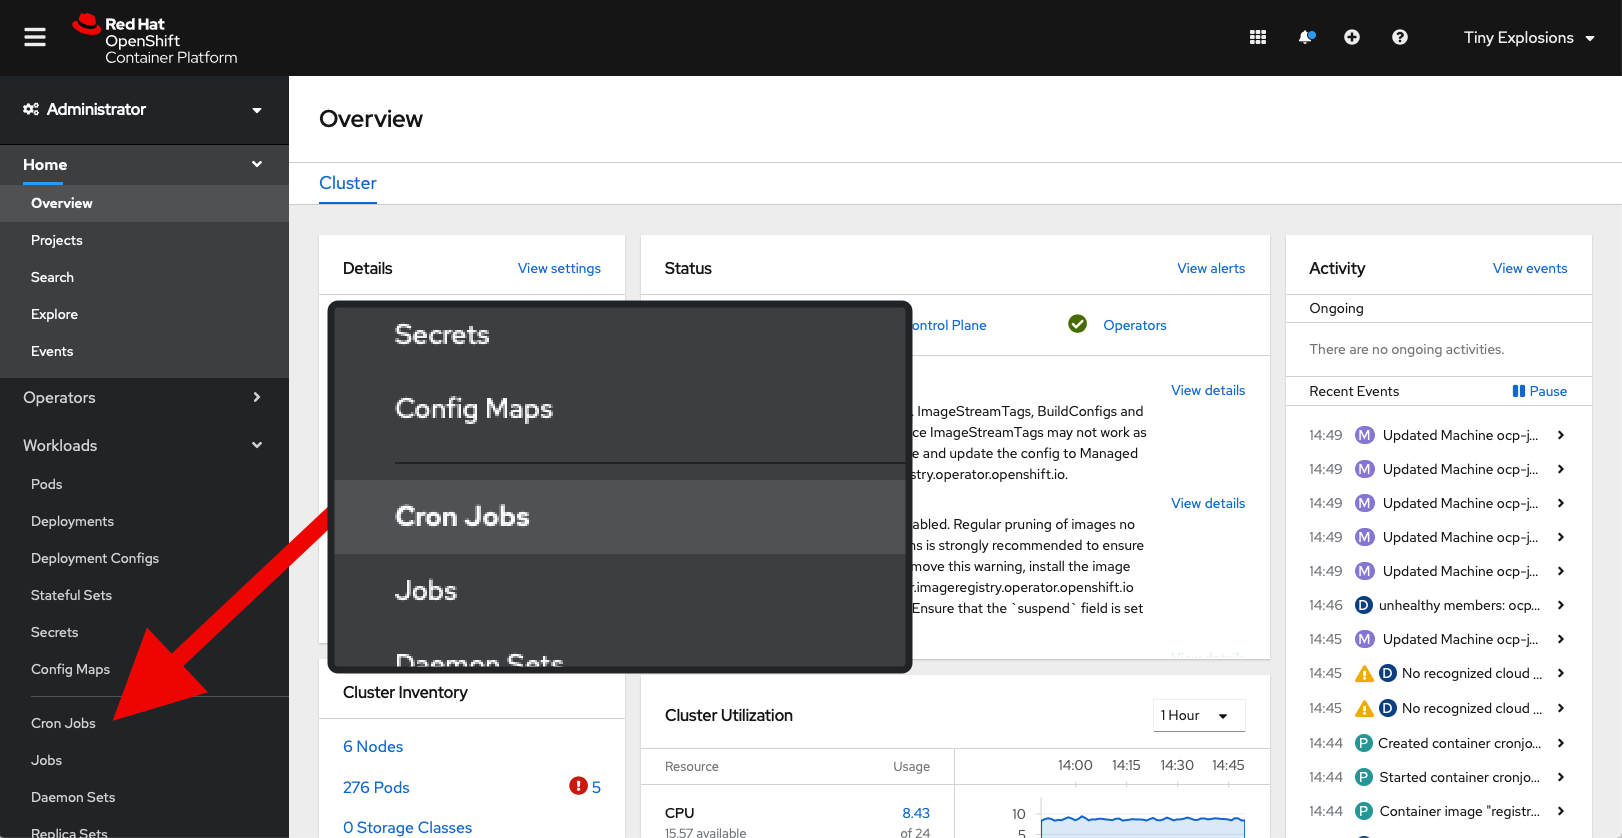 OpenShift Console with 'Cron Jobs' highlighted